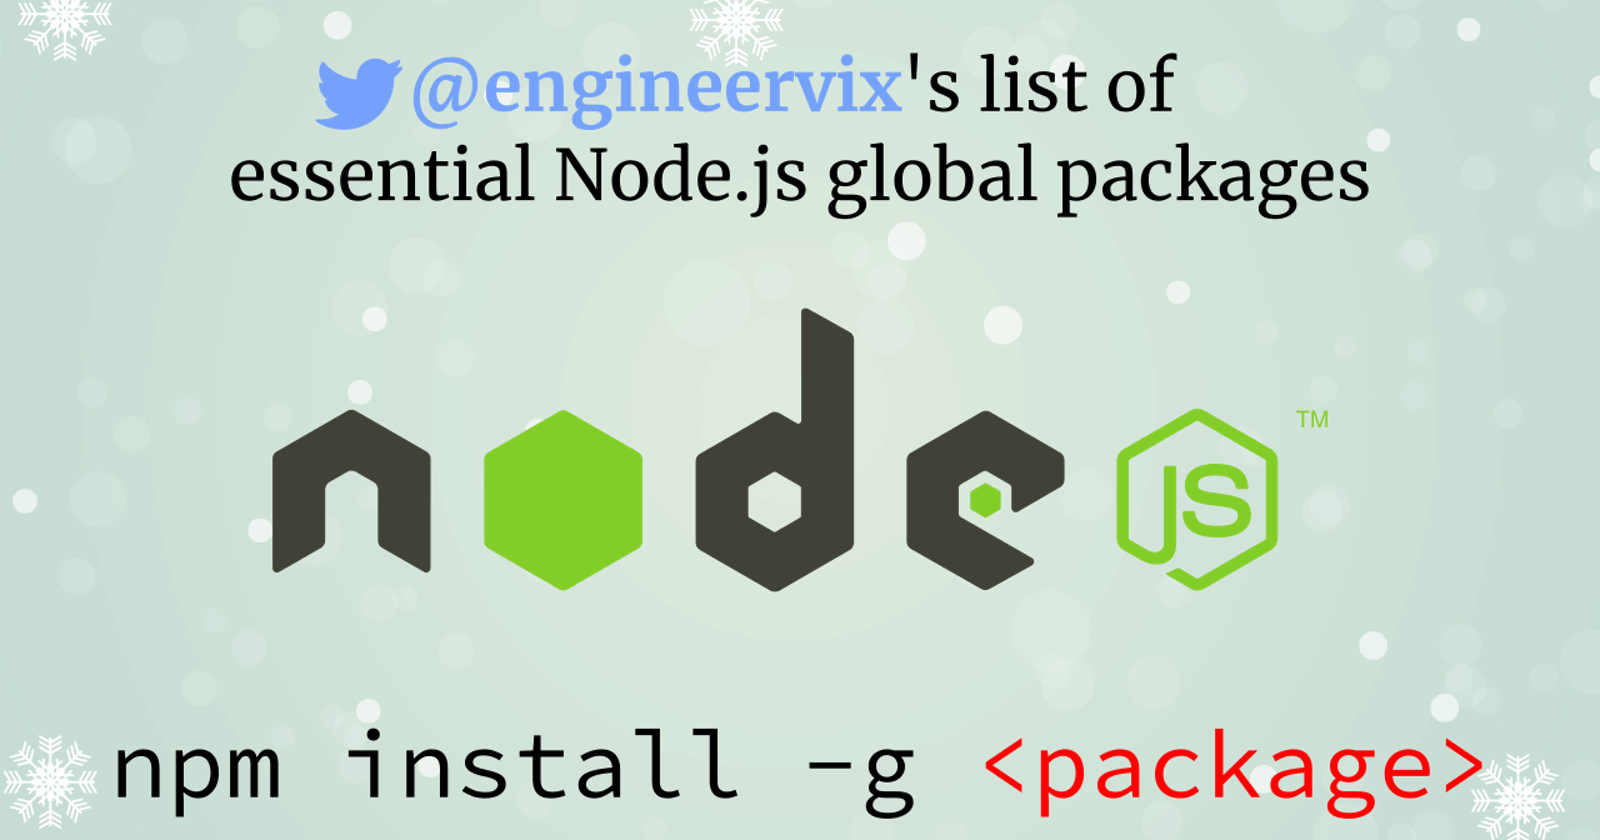 an opinionated list of essential Node.js global packages